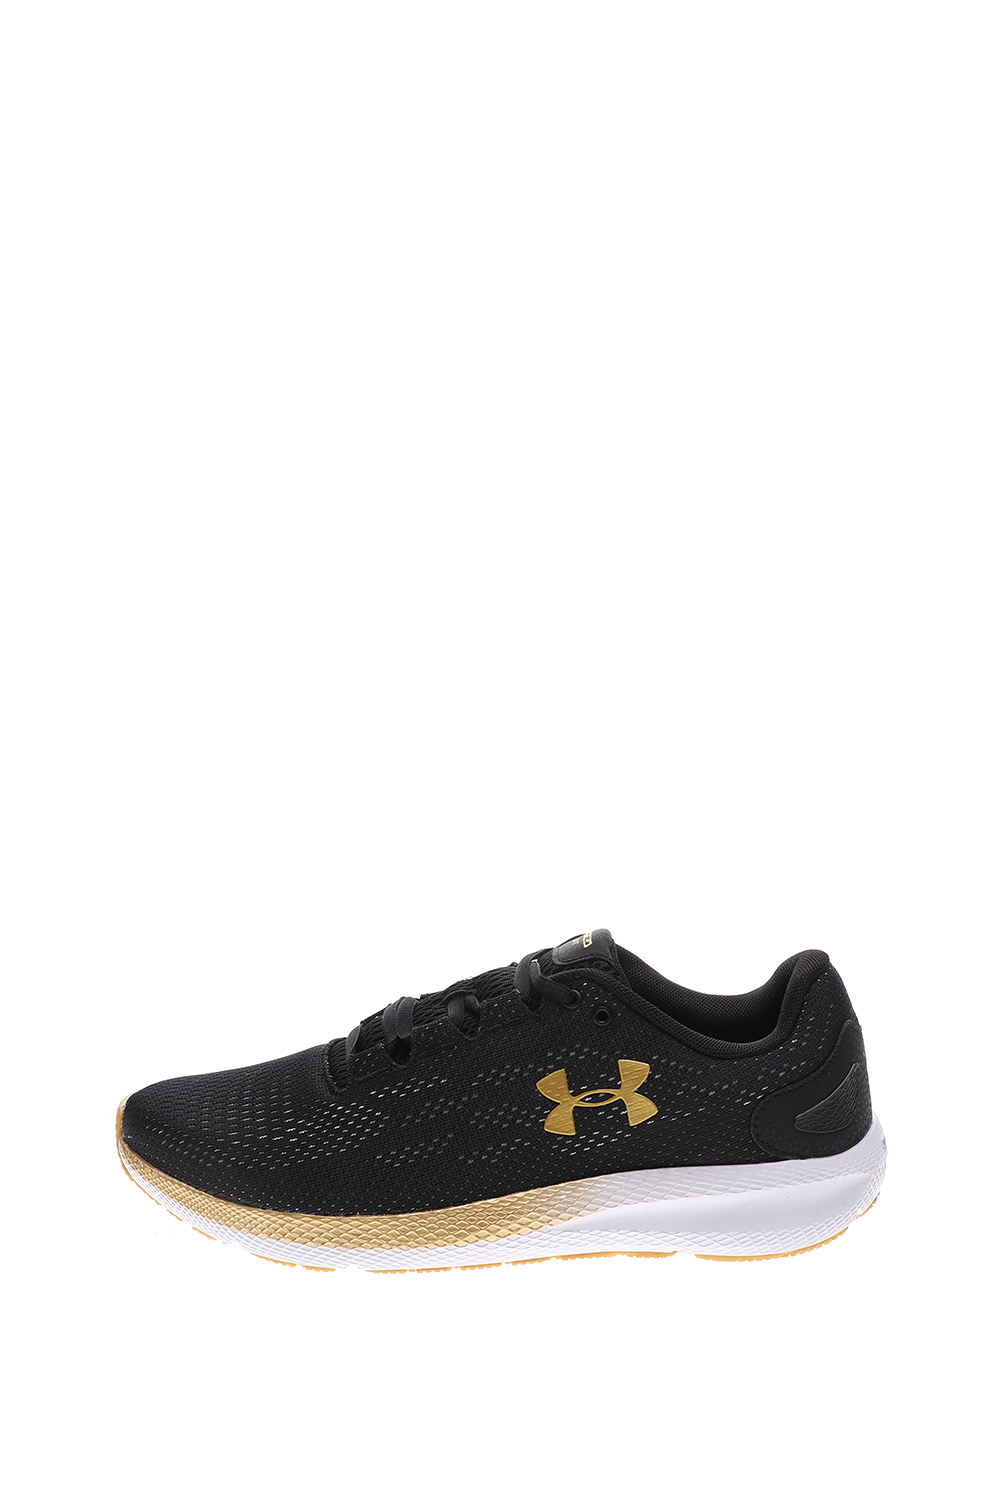 UNDER ARMOUR – Ανδρικά παπούτσια running UNDER ARMOUR Charged Pursuit 2 μαύρα